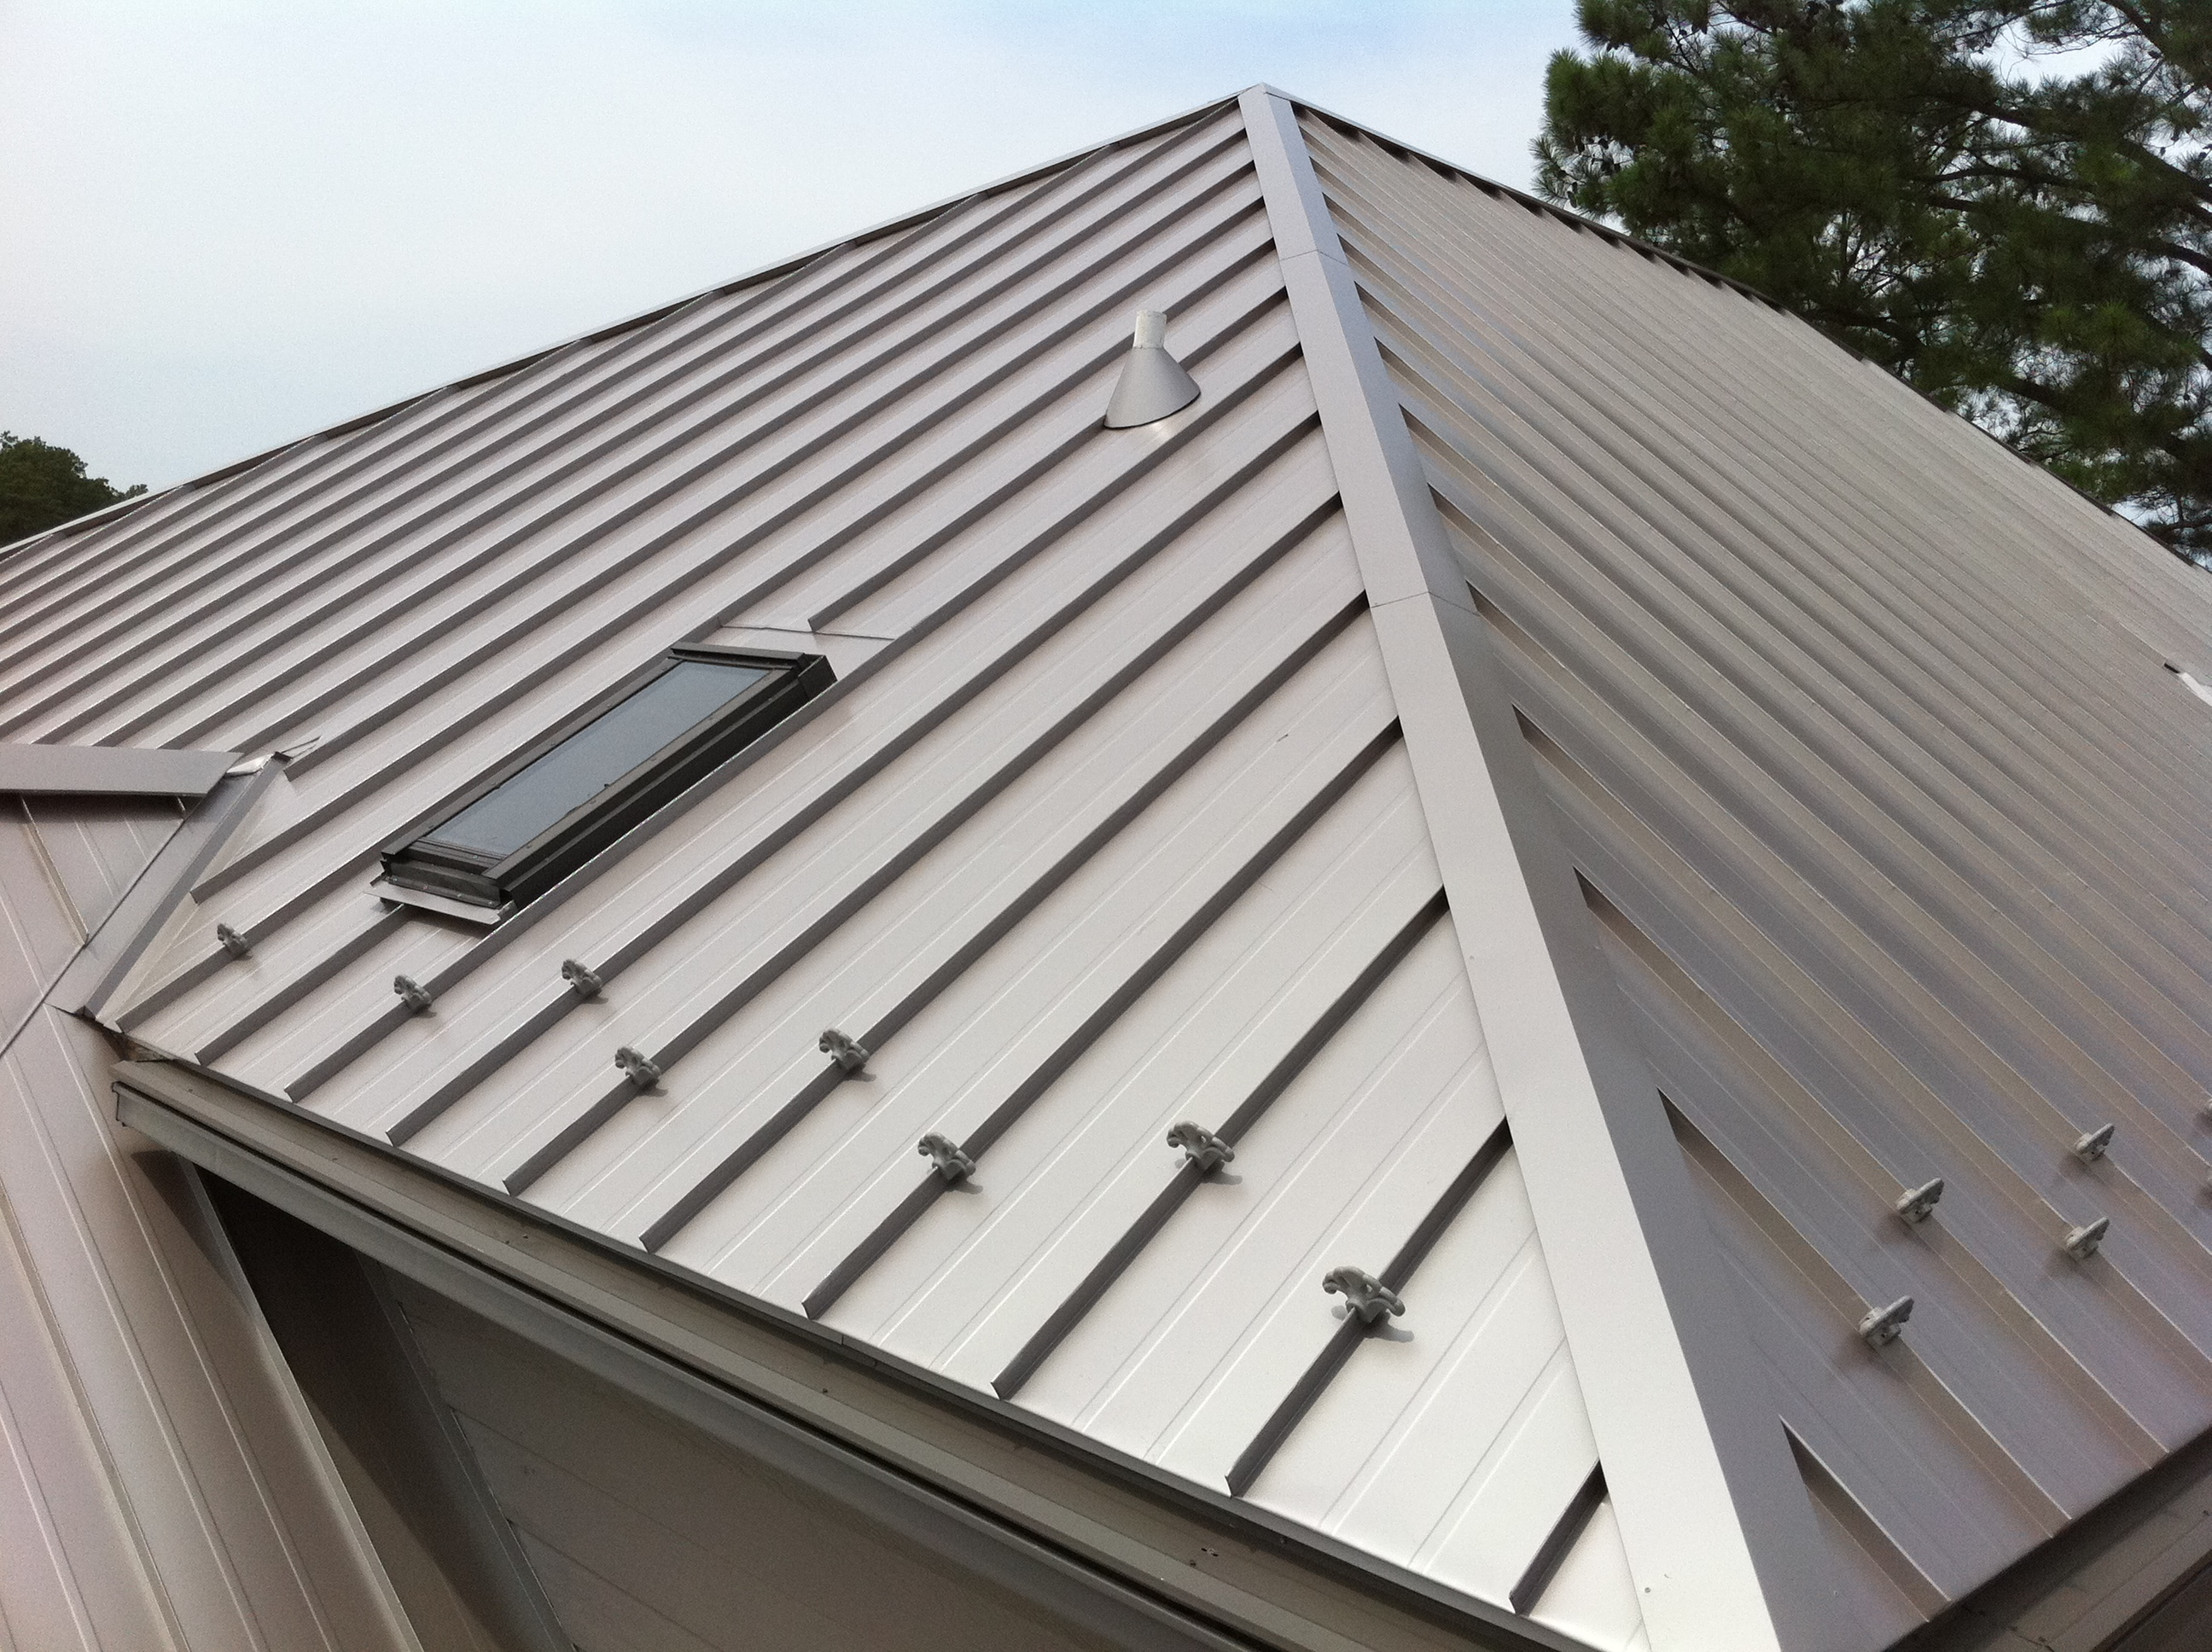 7 Reasons To Install A Standing Seam Metal Roof